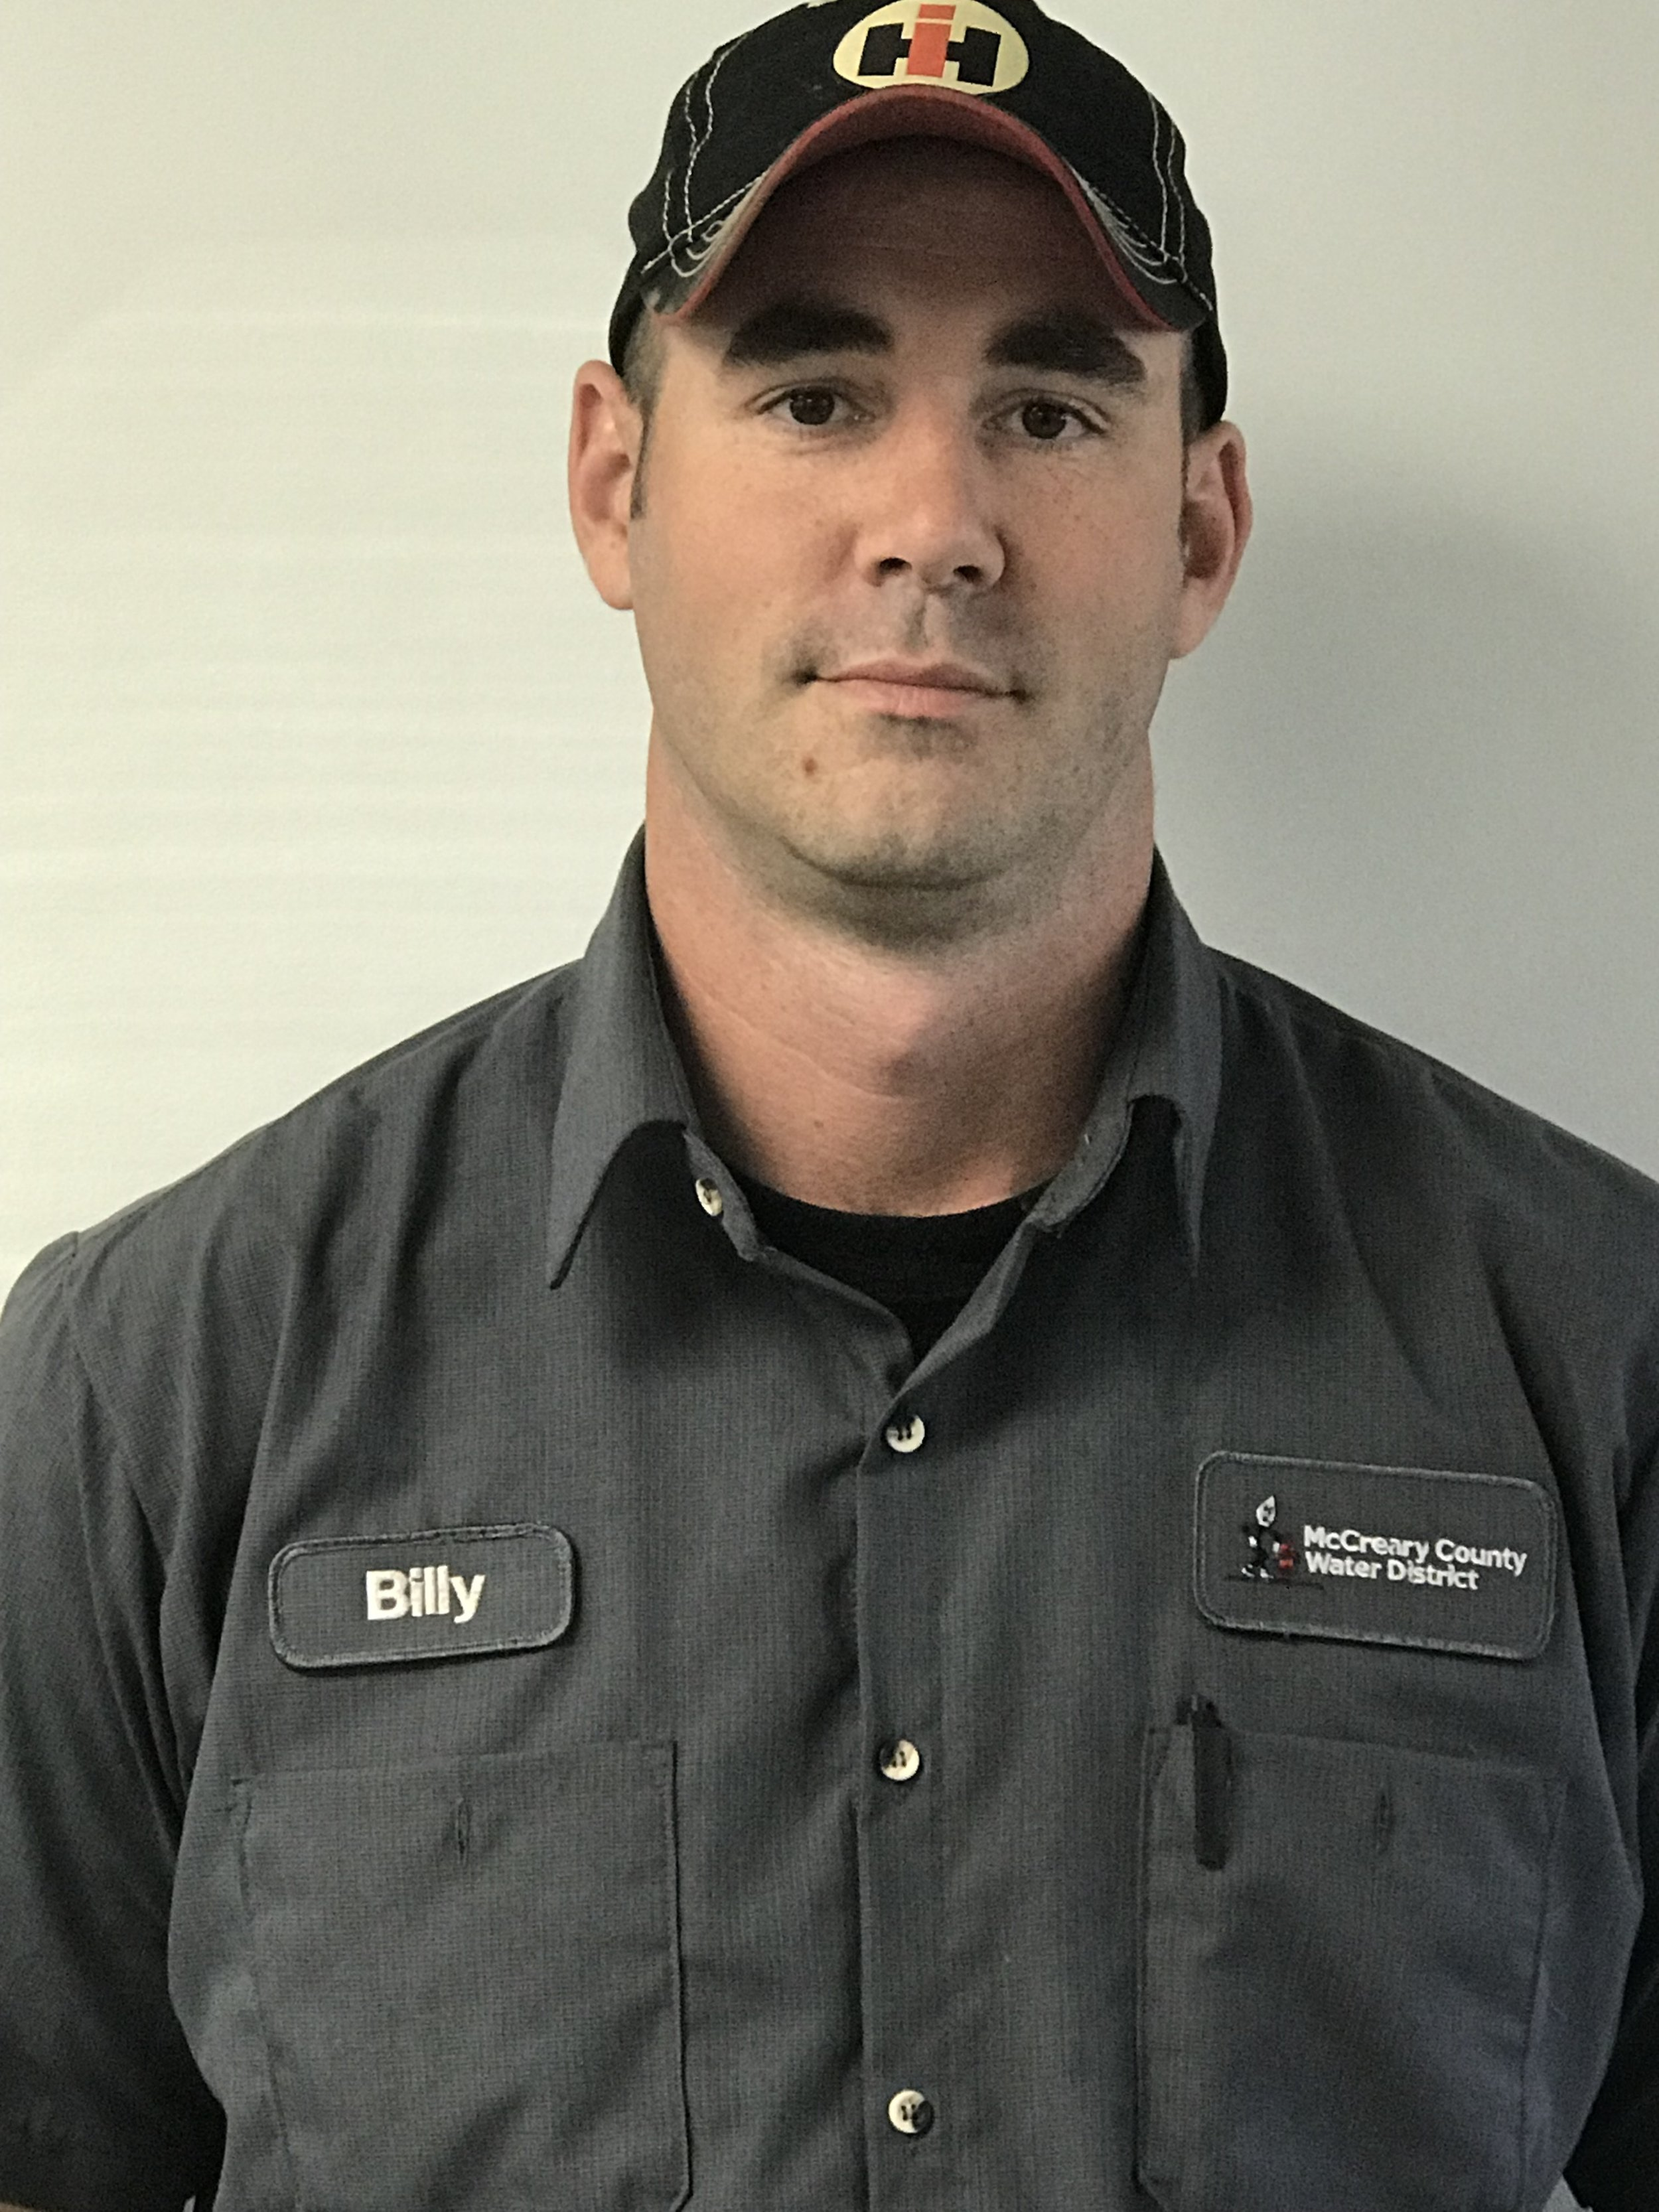 BILLY TRAMMELL  has worked at the water district since 2007. He holds Drinking Water Distribution Class III, Wastewater Treatment Class III, and Wastewater Collection Class II Certifications.